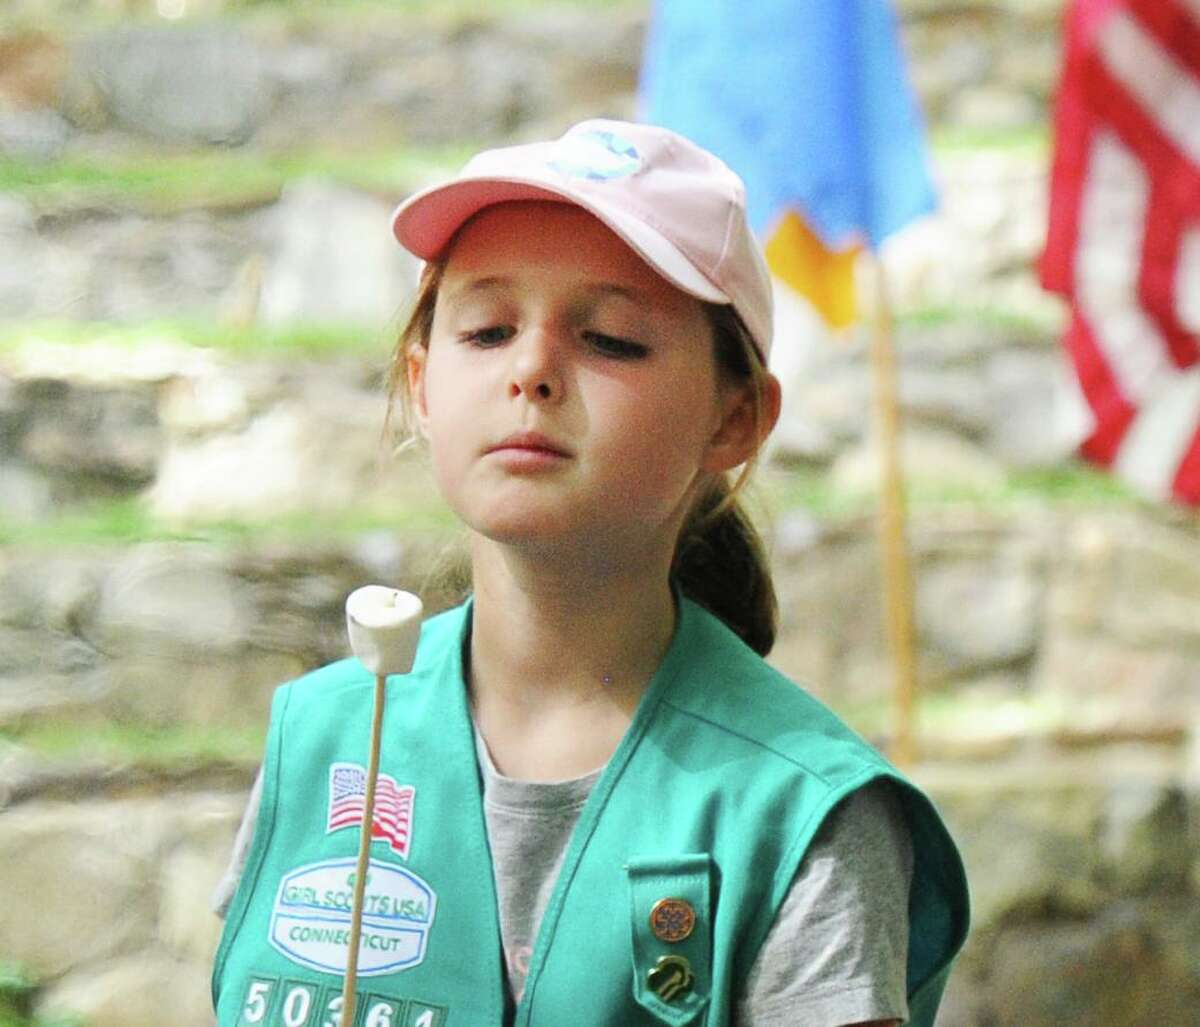 Greenwich Girl Scout Alexa Tobias, 9, checked her marshmallow during a campfire roast that was part of the Greenwich Girl Scouts